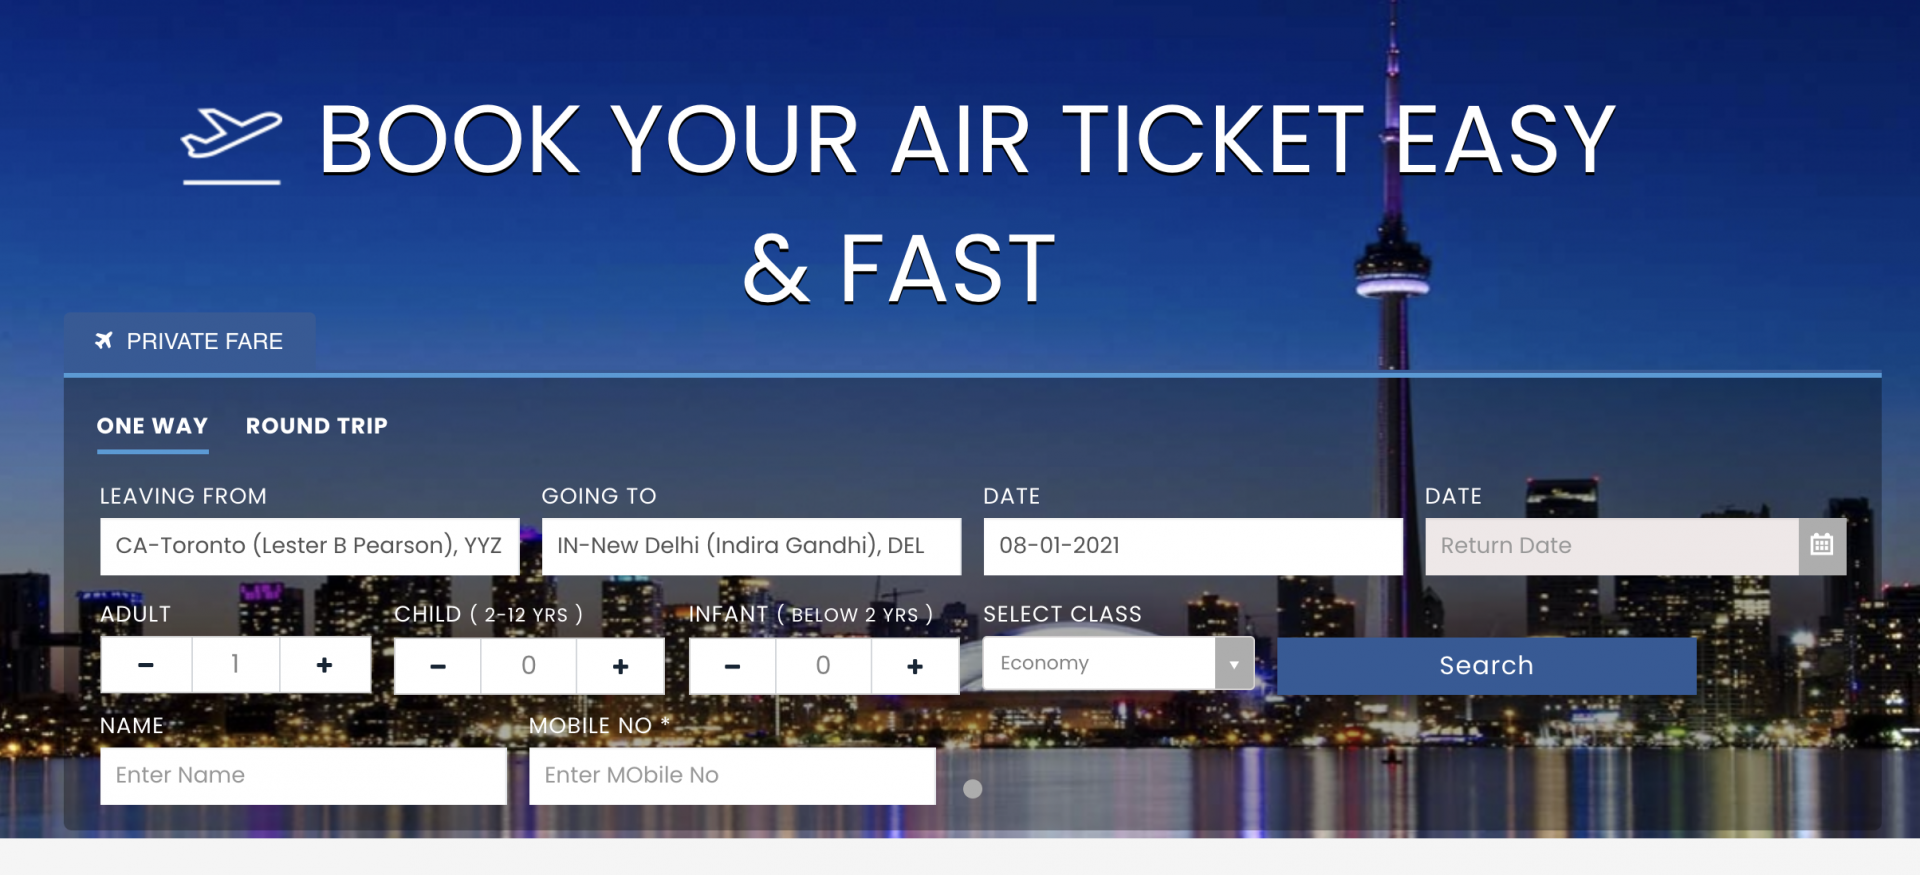 Toronto Police issue Public Safety Alert following suspected fraudulent travel website